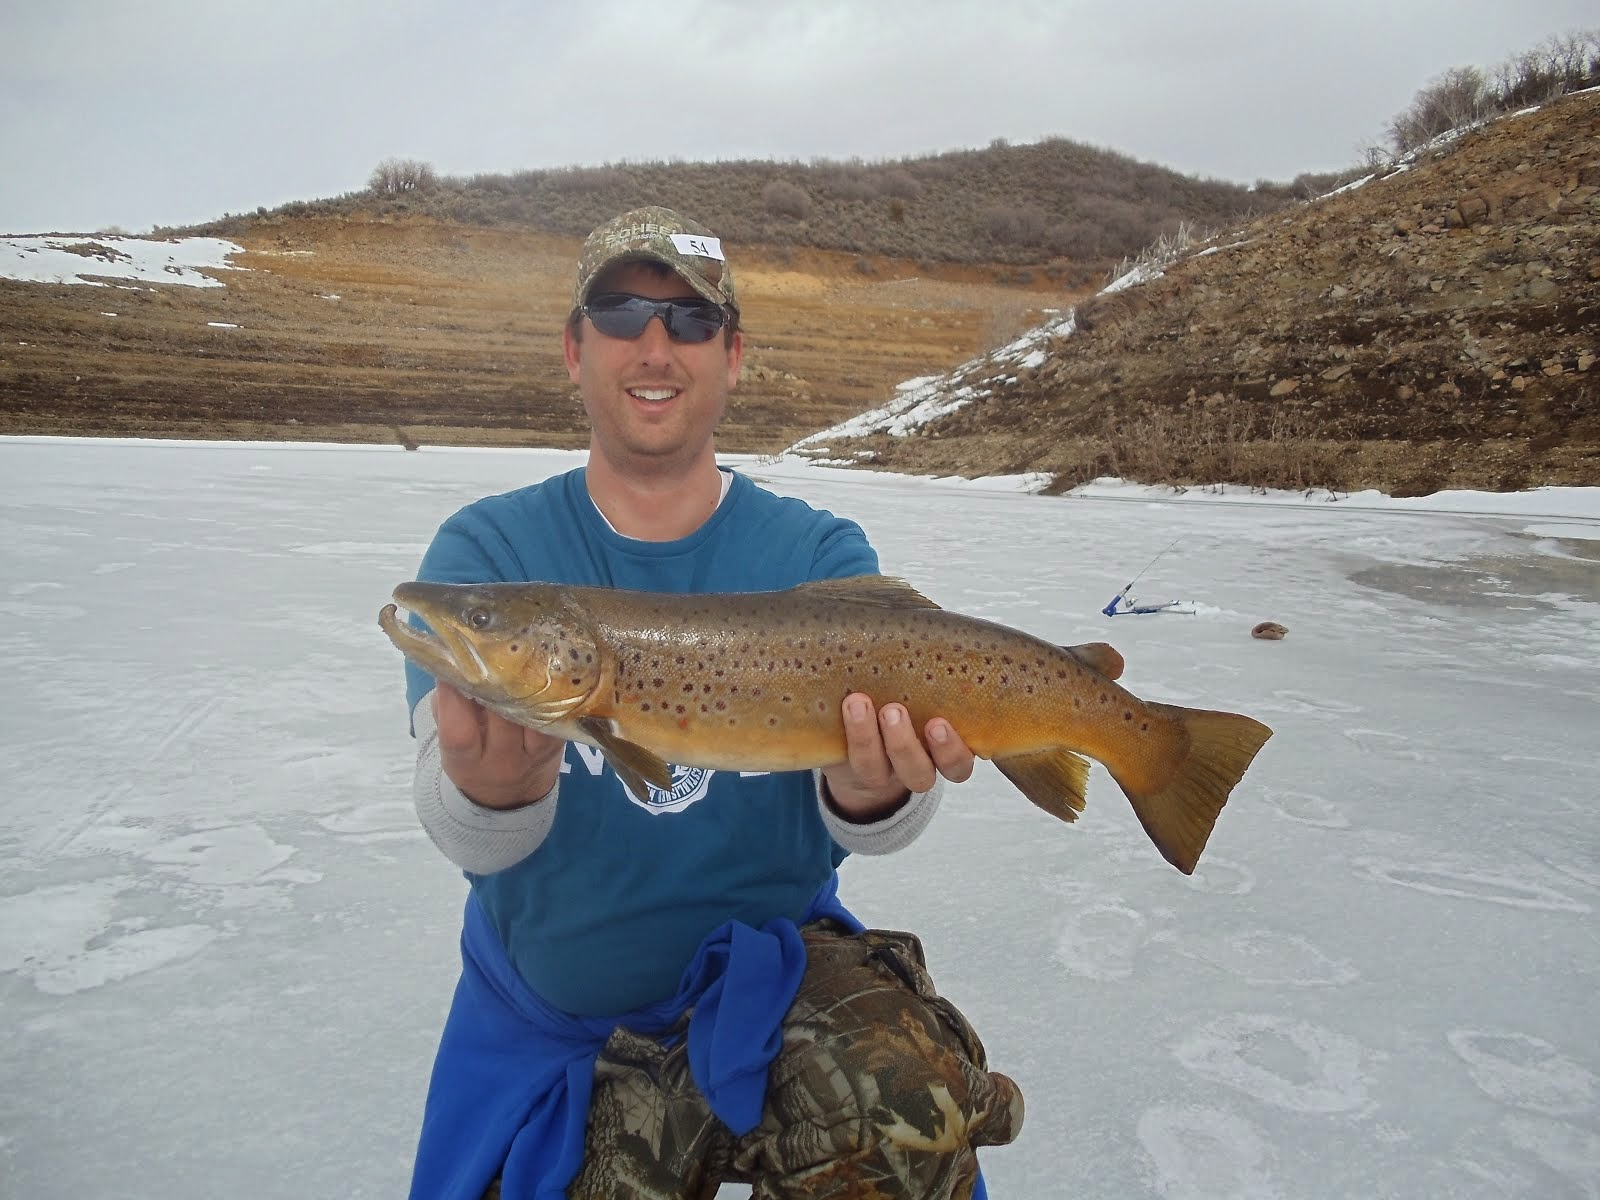 utah fisherman victory at flaming gorge